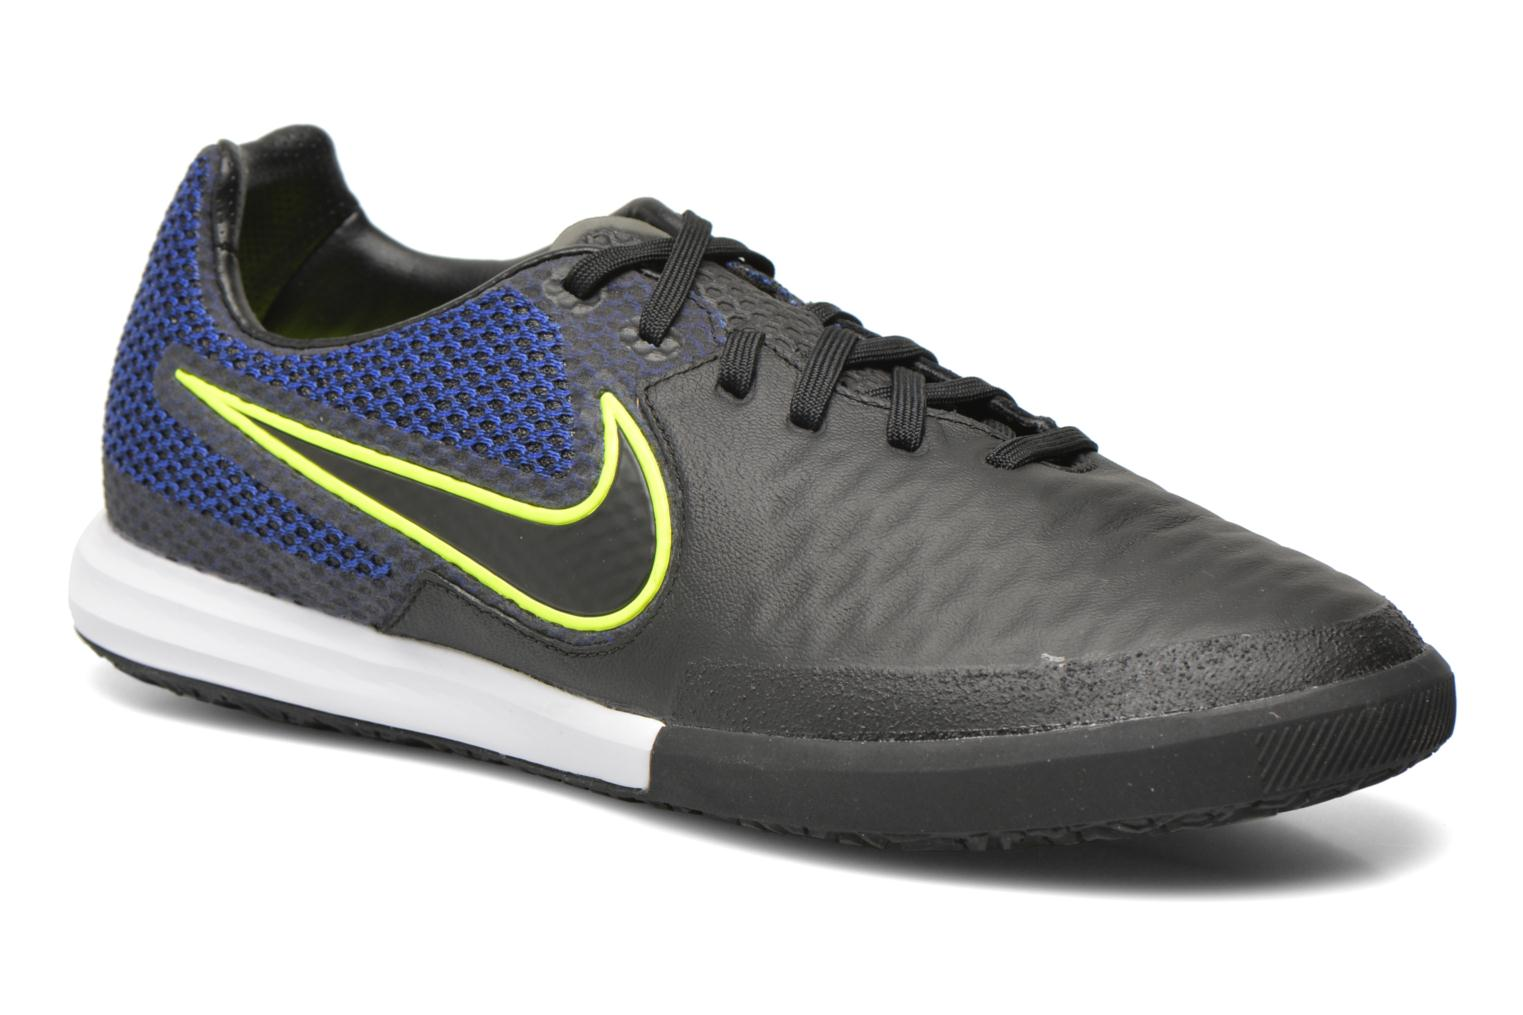 Magistax Finale Ic Black/Black-Volt-Midnight Navy